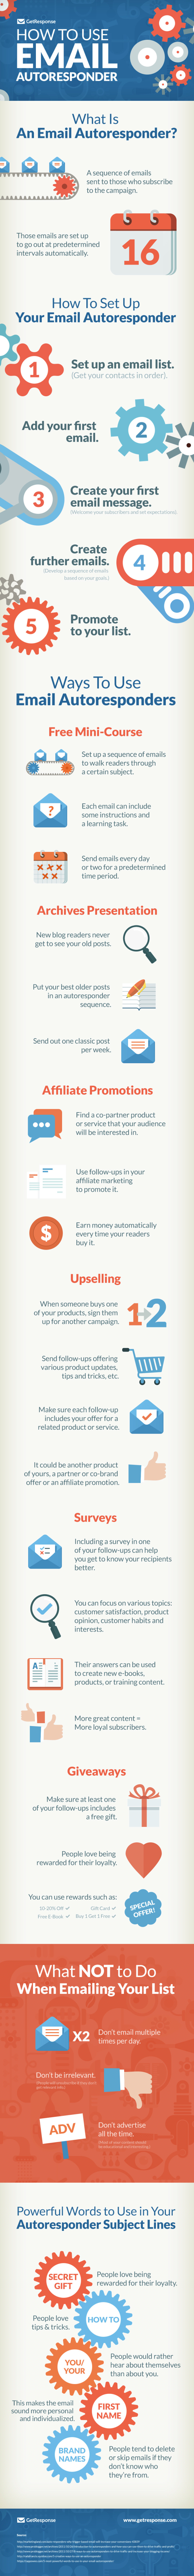 How To Use Email Autoresponders - Infographic